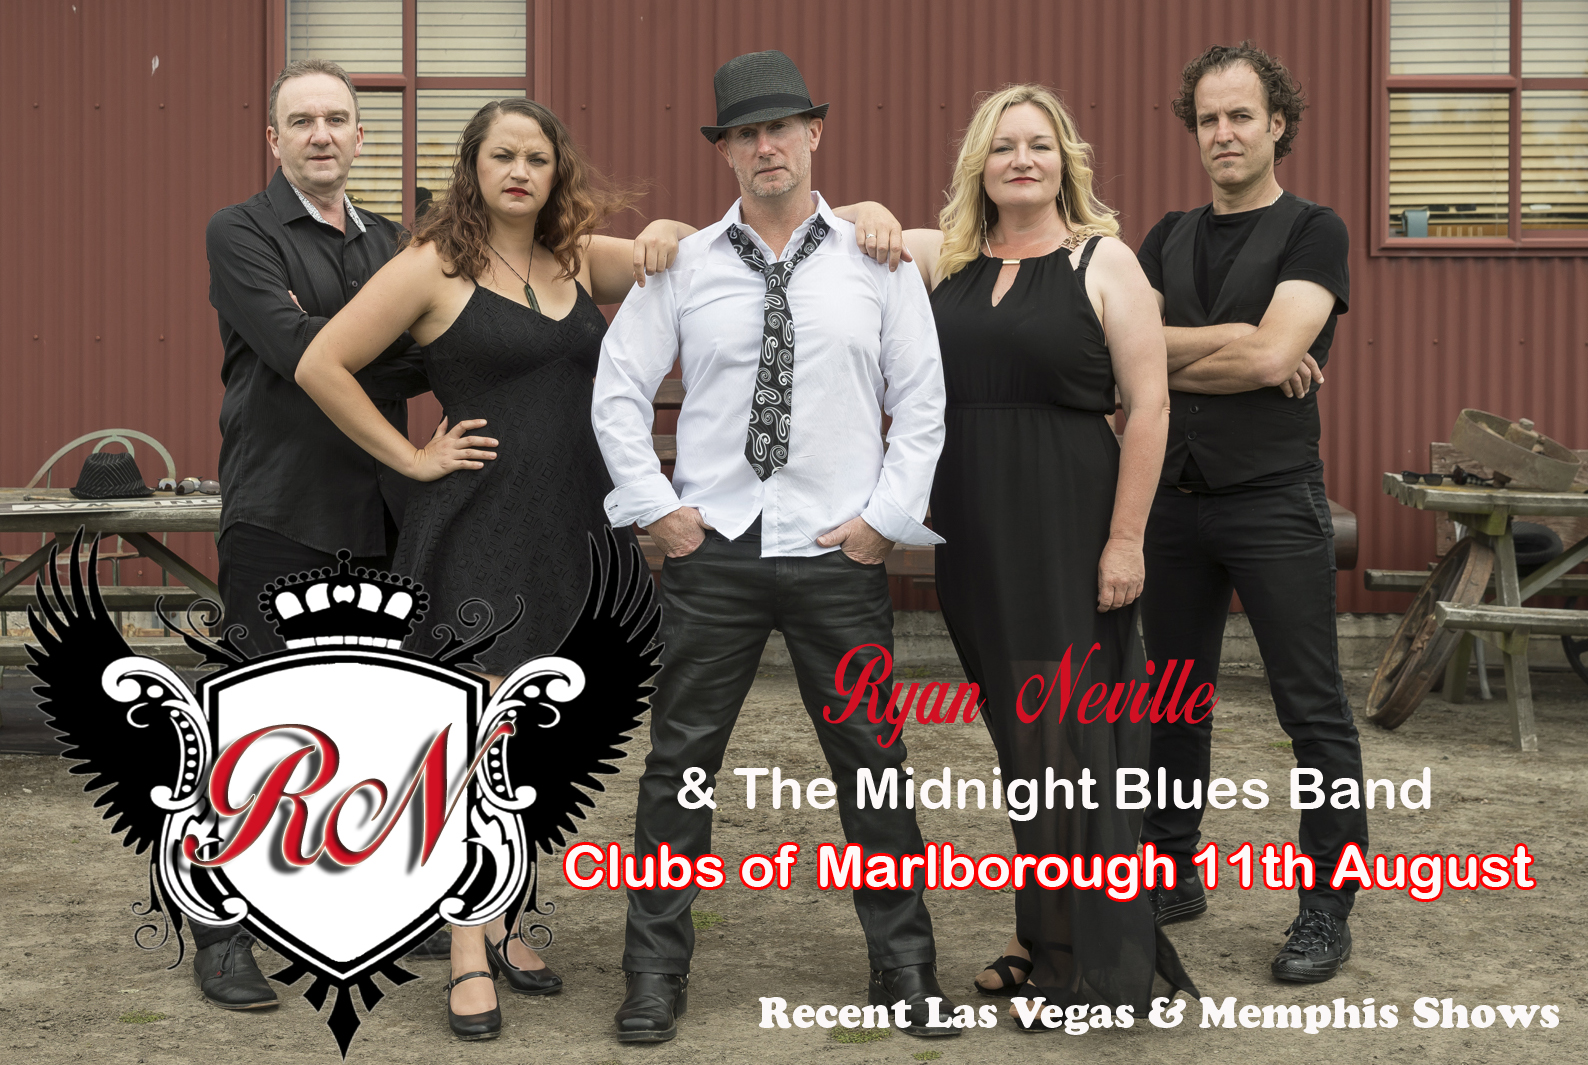 Ryan Neville And The Midnight Blues Band